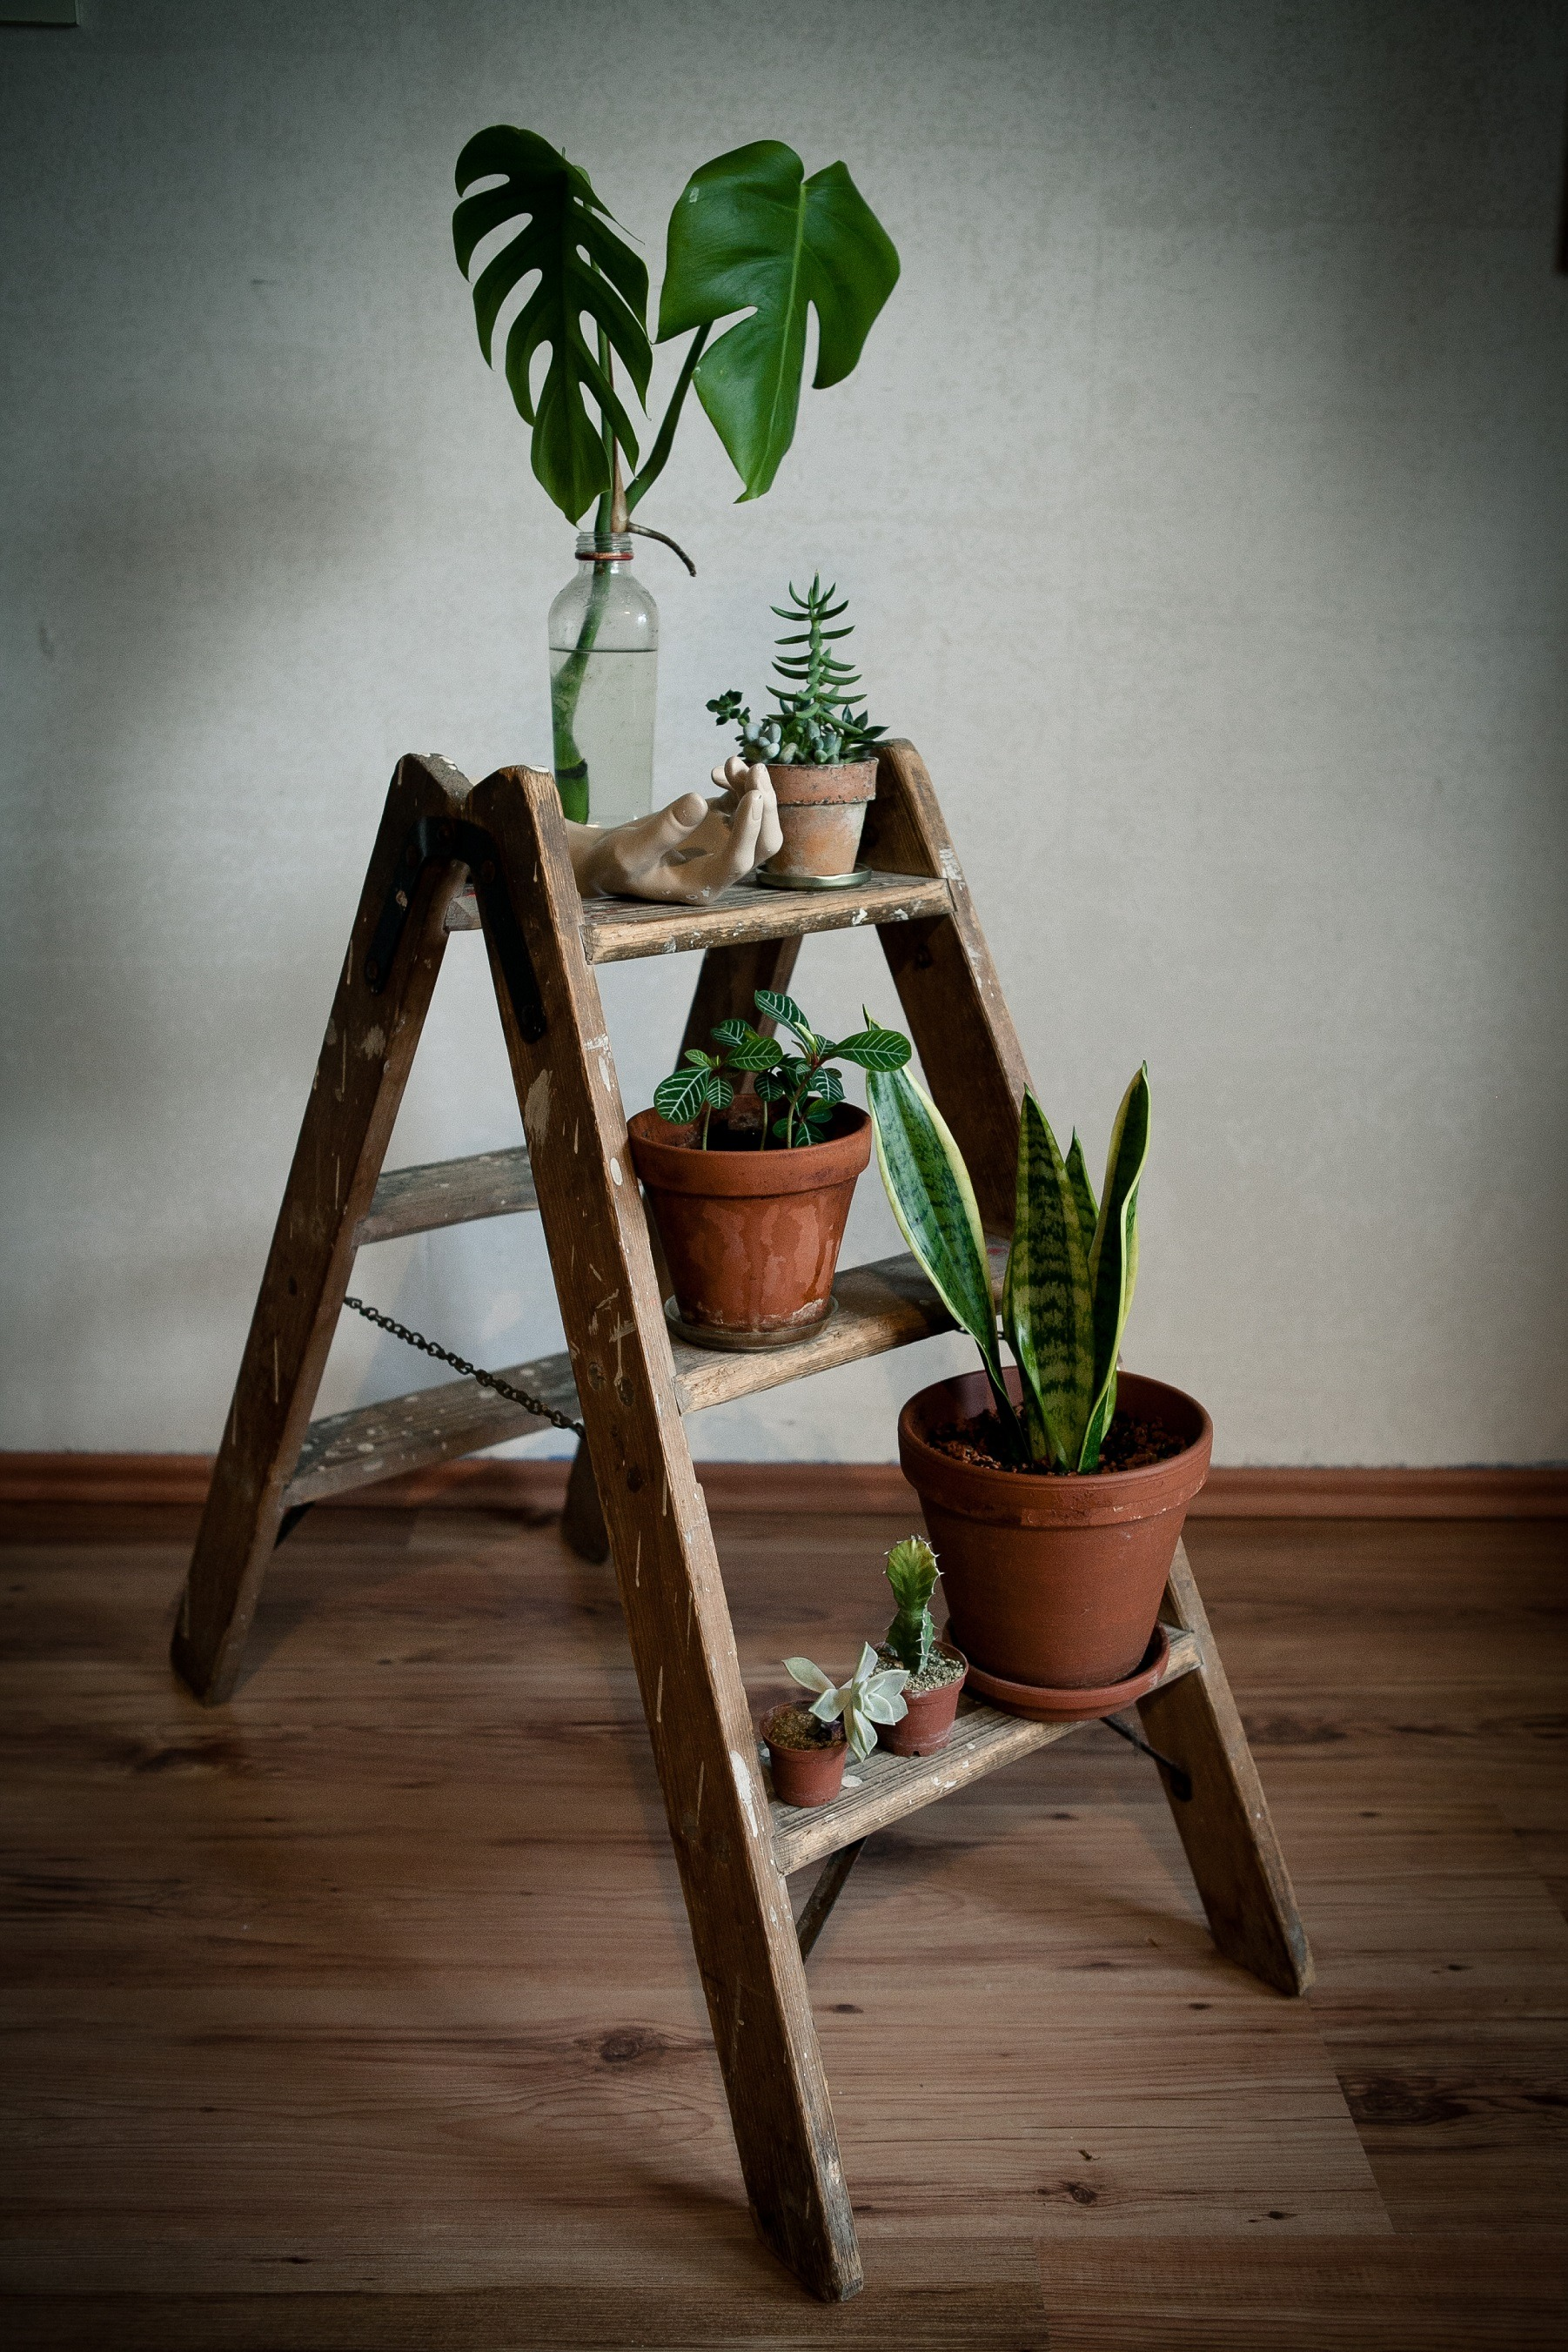 Vintage ladder with plants